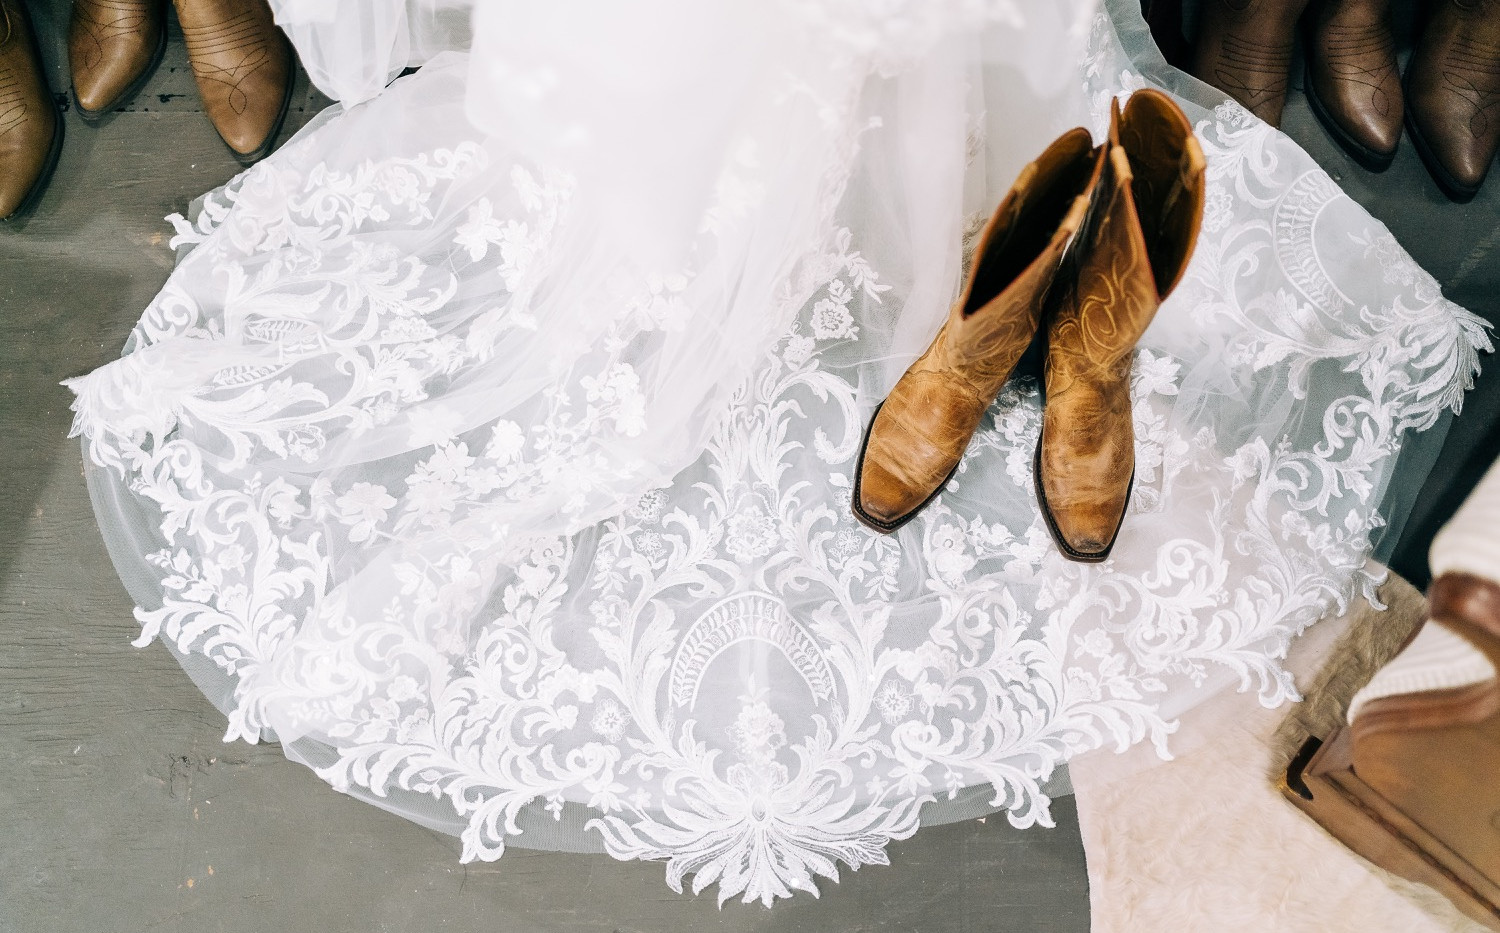 boots and dress.jpg